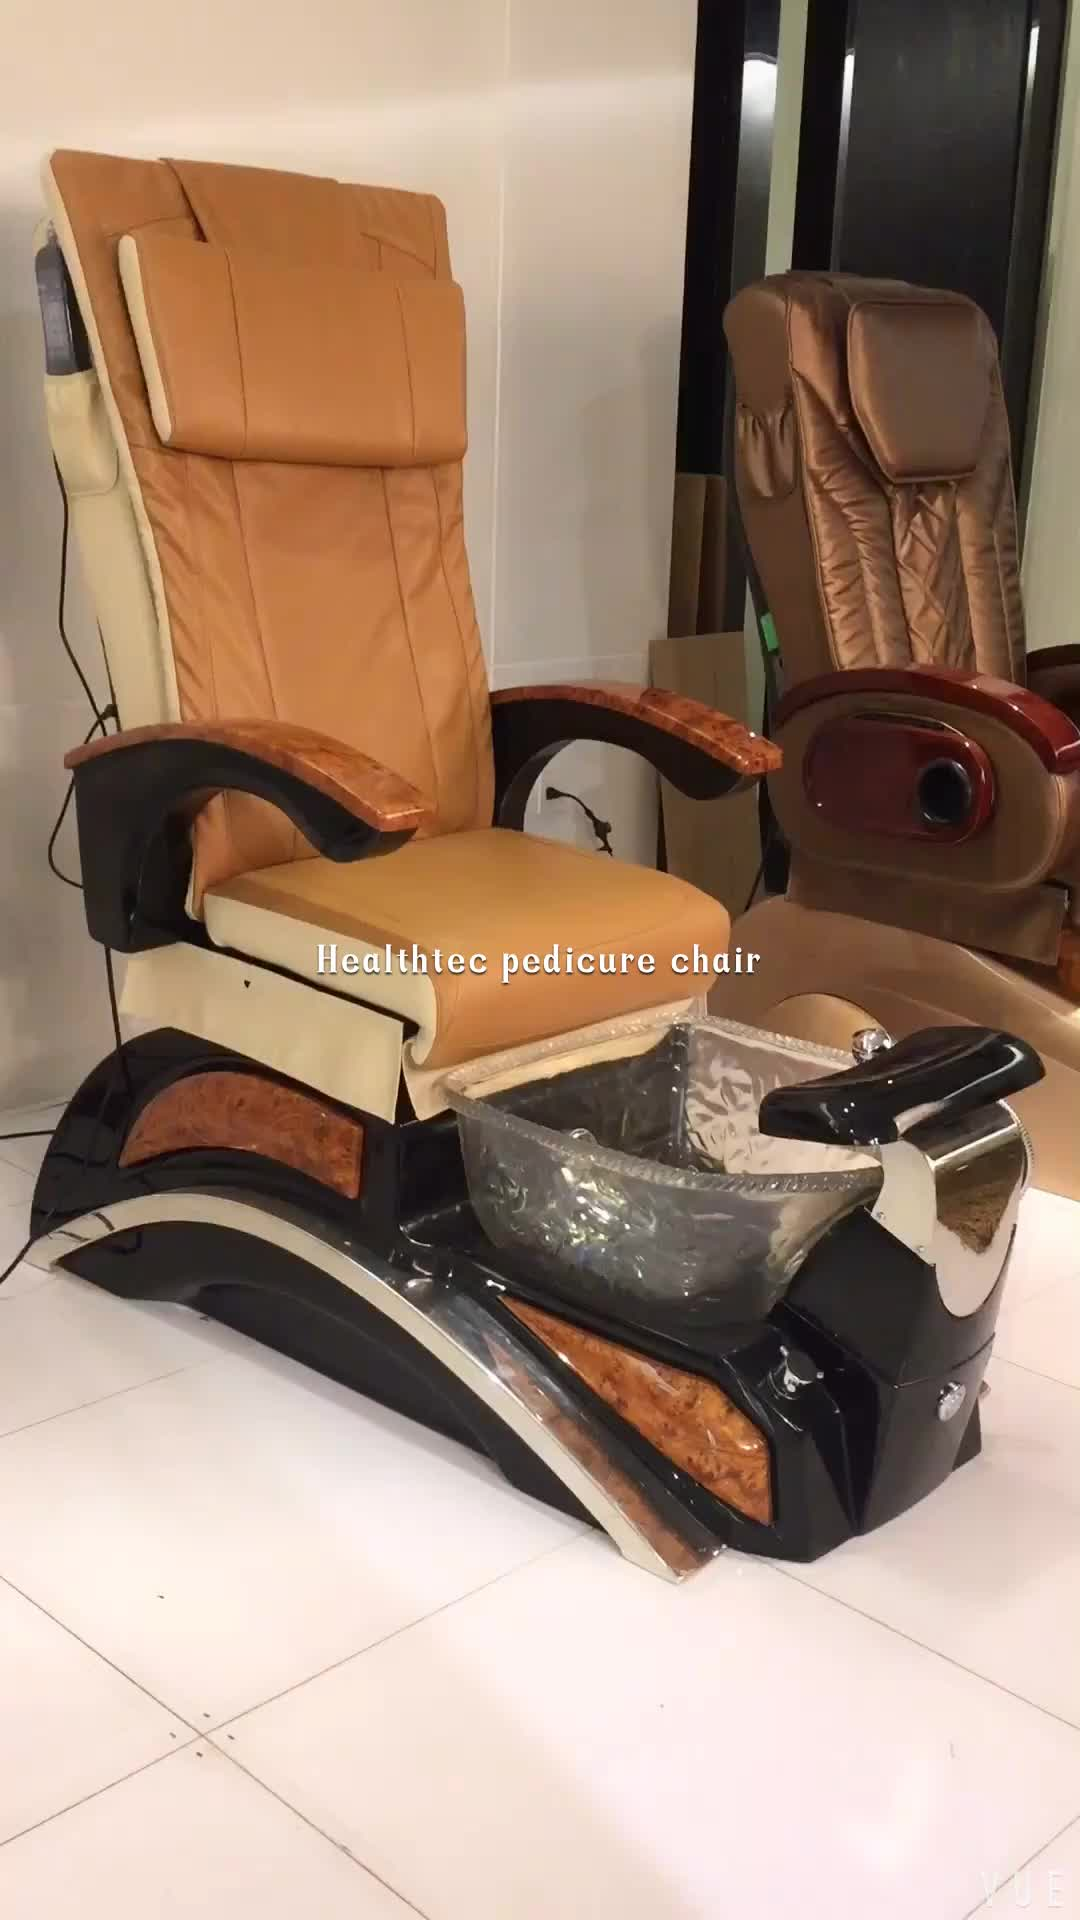 Pedicure Chairs No Plumbing Needed Whirlpool Massage Pedicure Chair Spa No Plumbing Buy